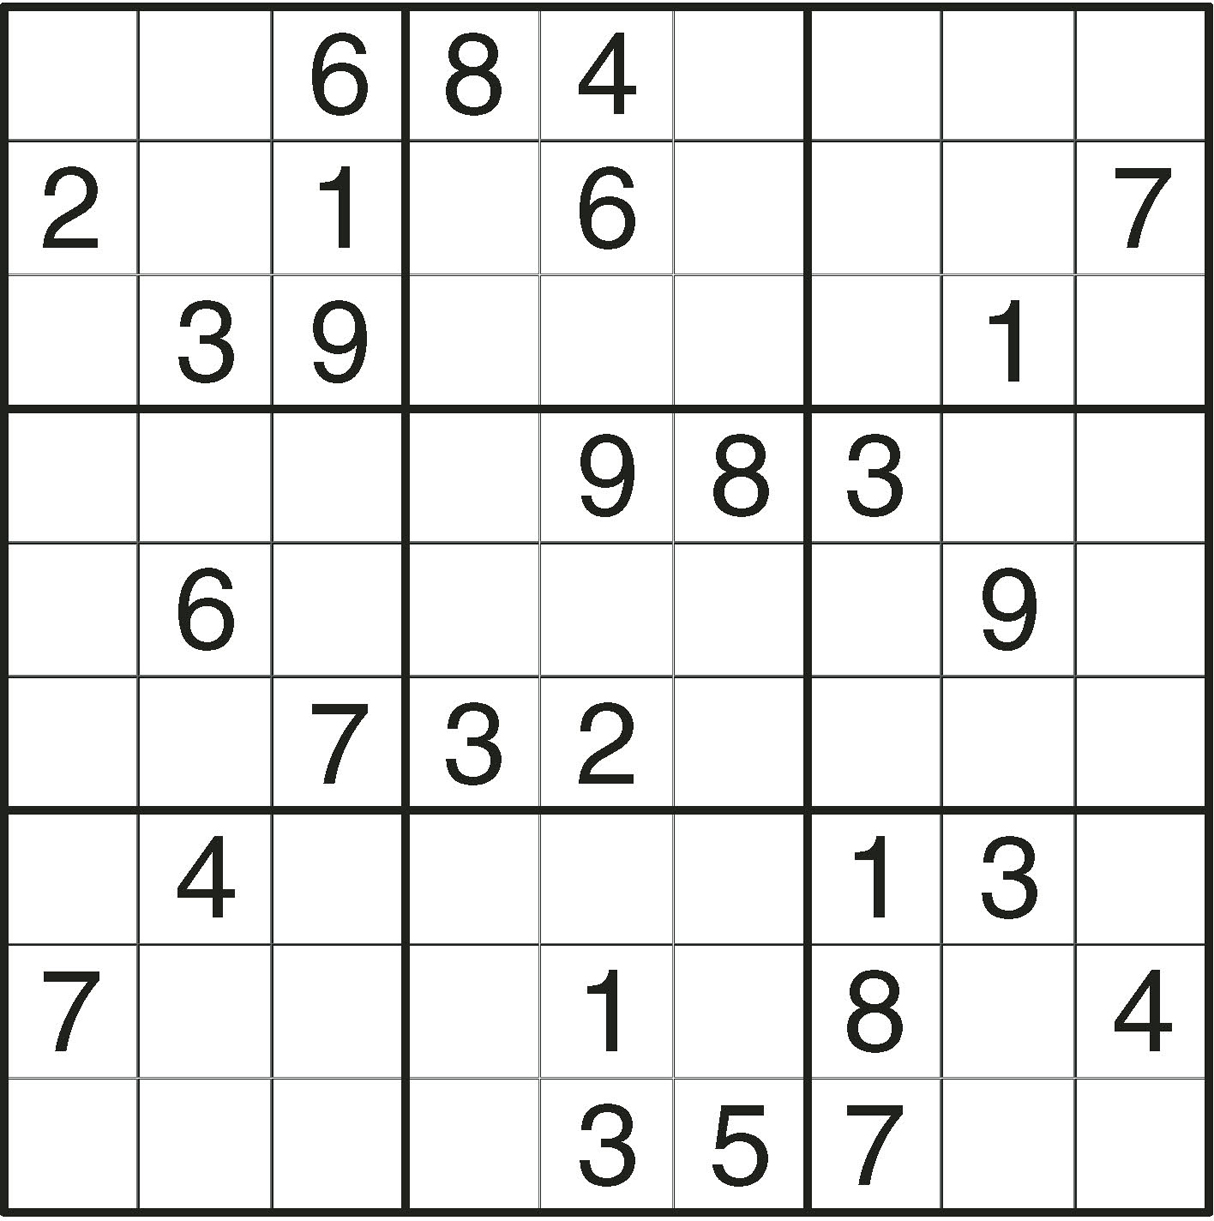 Hilaire image regarding sudoku for beginners printable